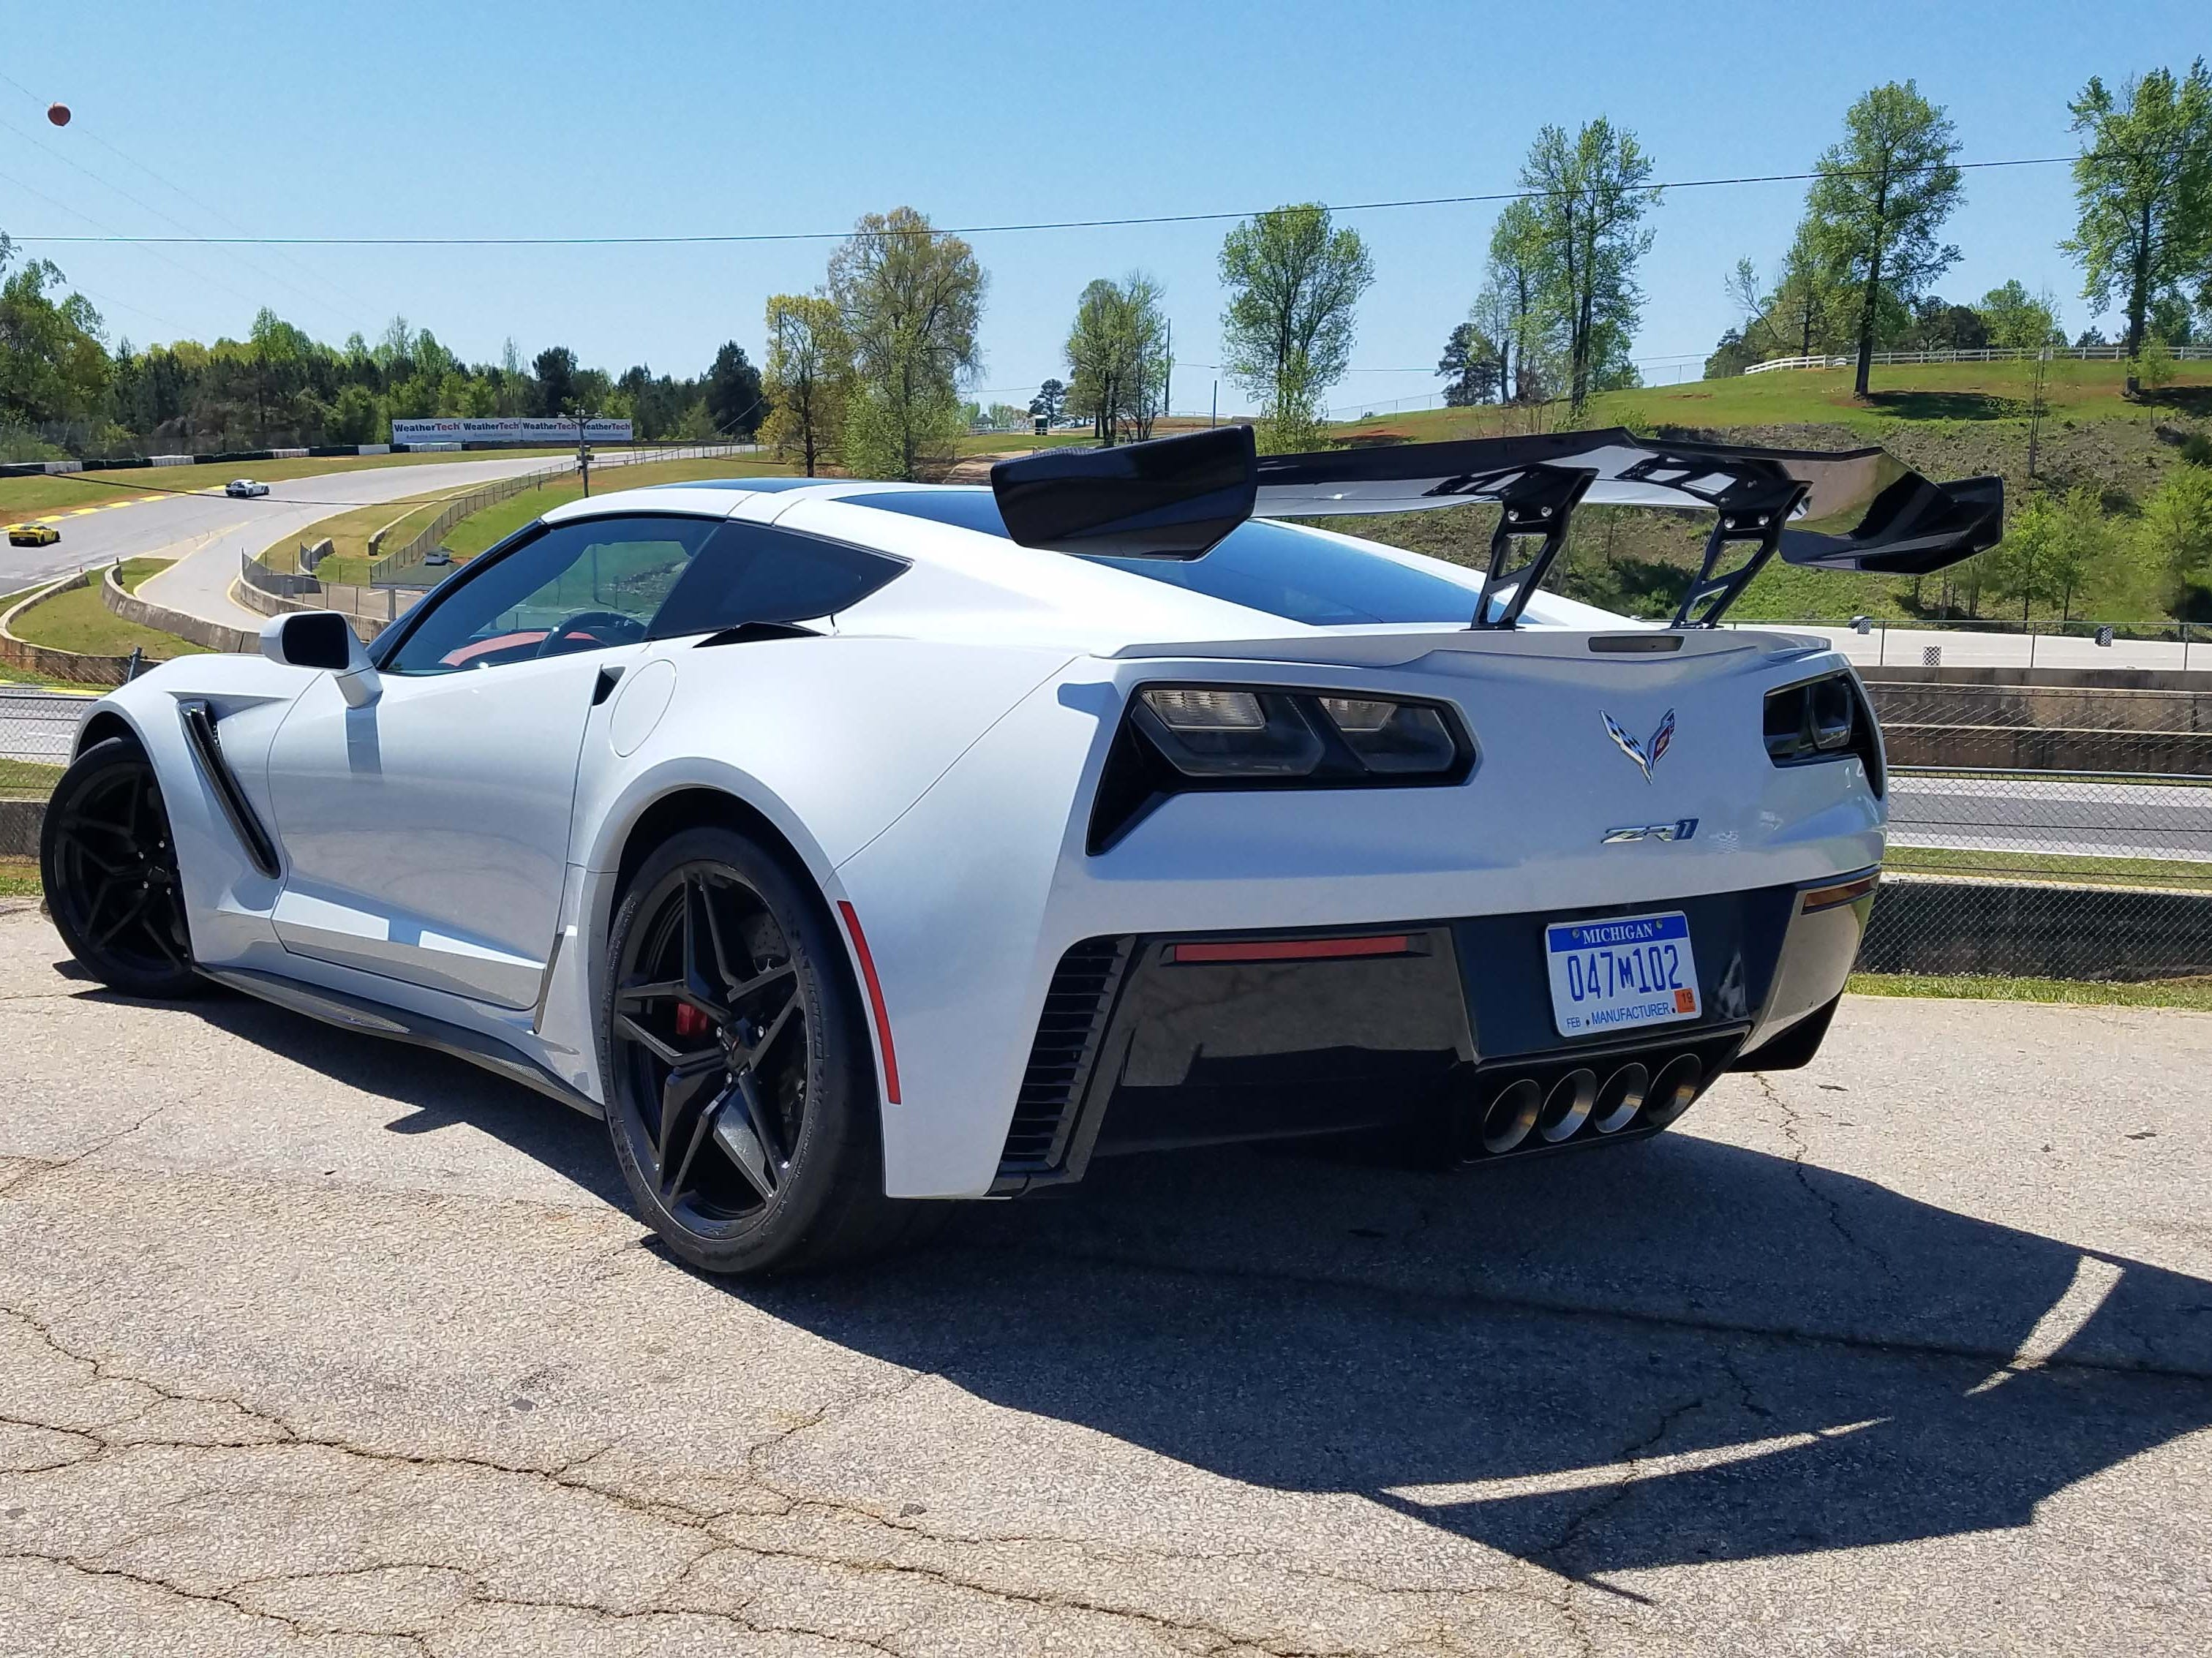 The wing's the thing. On Road Atlanta race track, the 755-horse Corvette ZR1 impresses with raw speed and nimble handling.